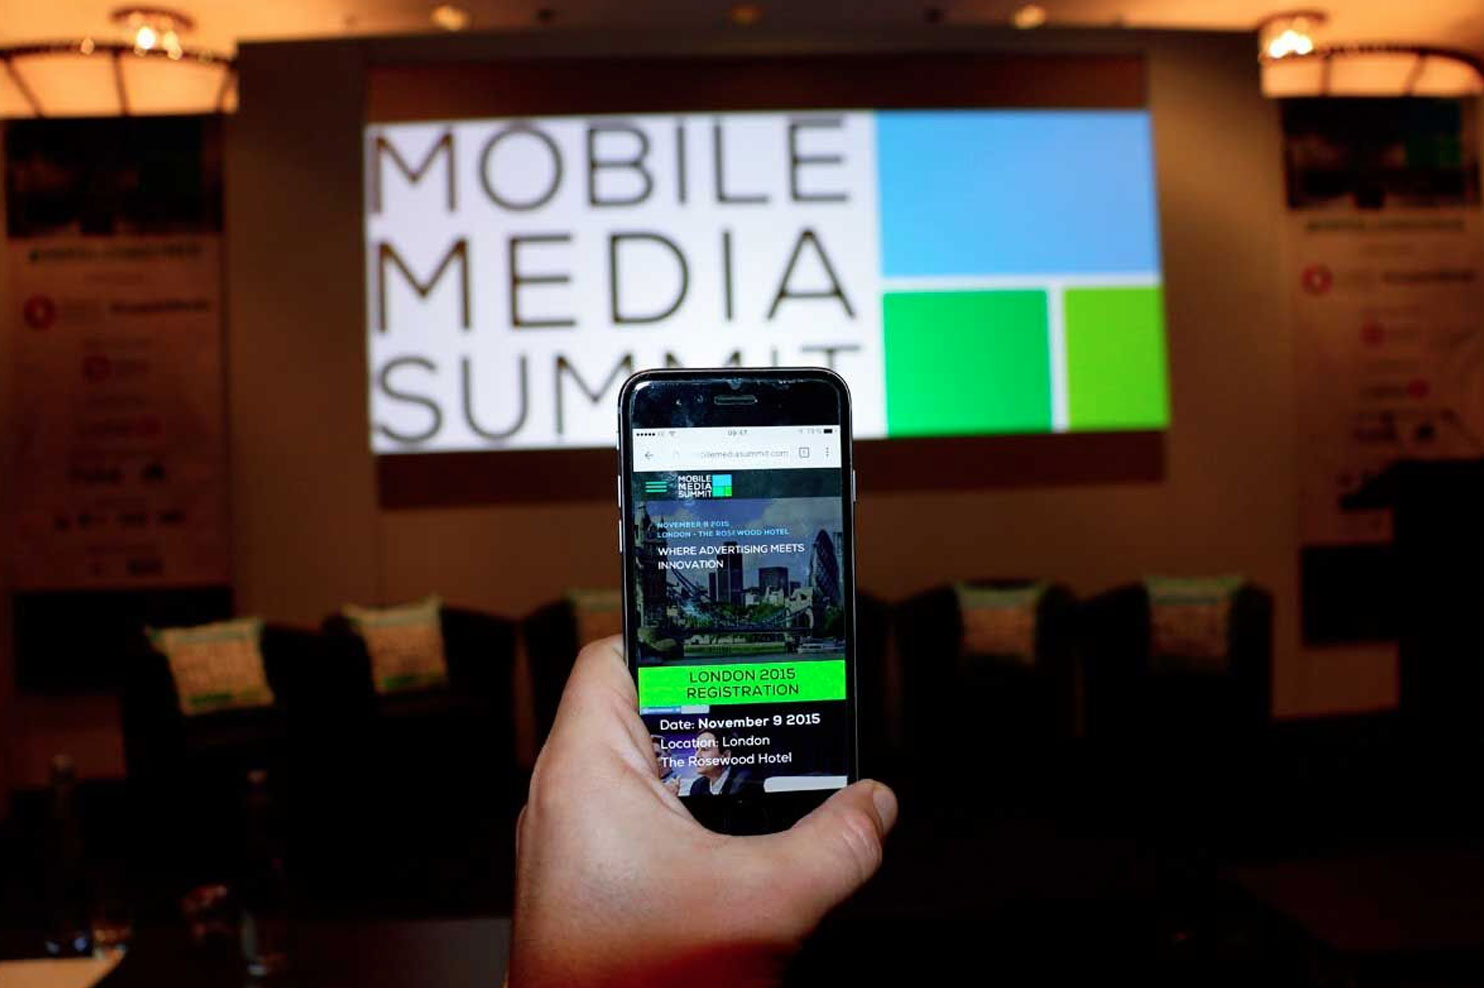 MOBILE MEDIA SUMMIT 2015 Londres